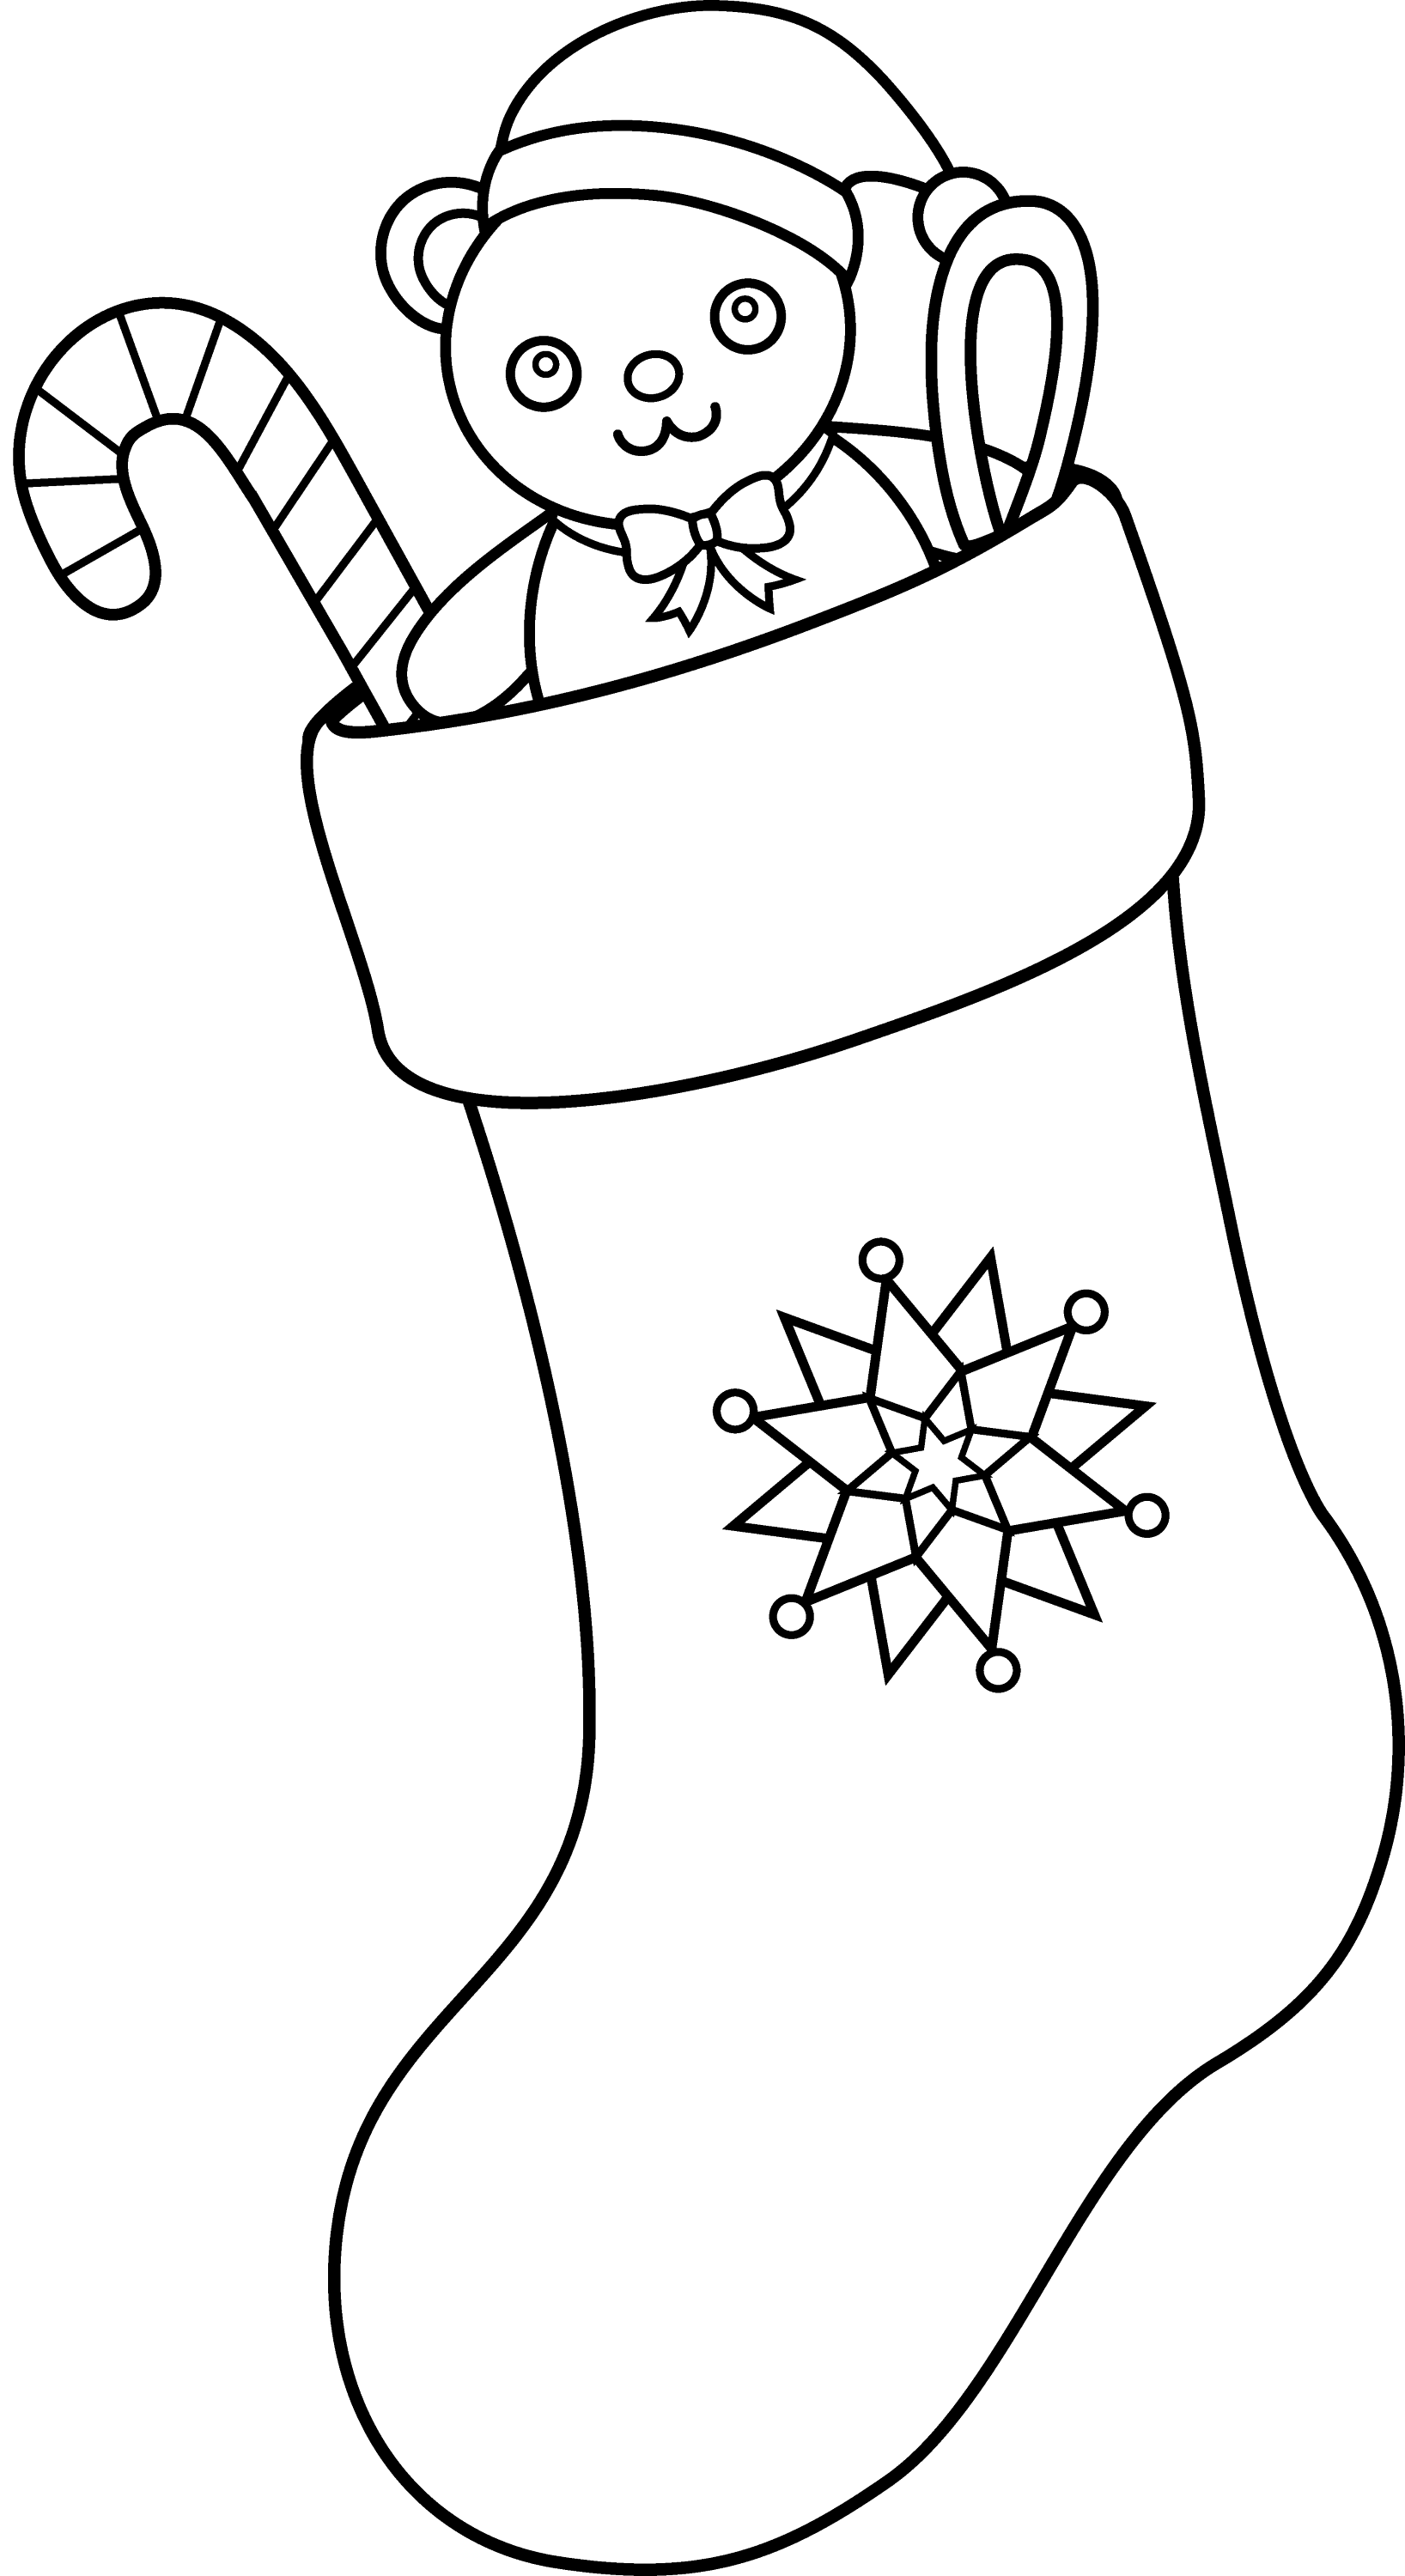 christmas stocking coloring pages christmas stocking colouring pages new calendar template pages coloring stocking christmas